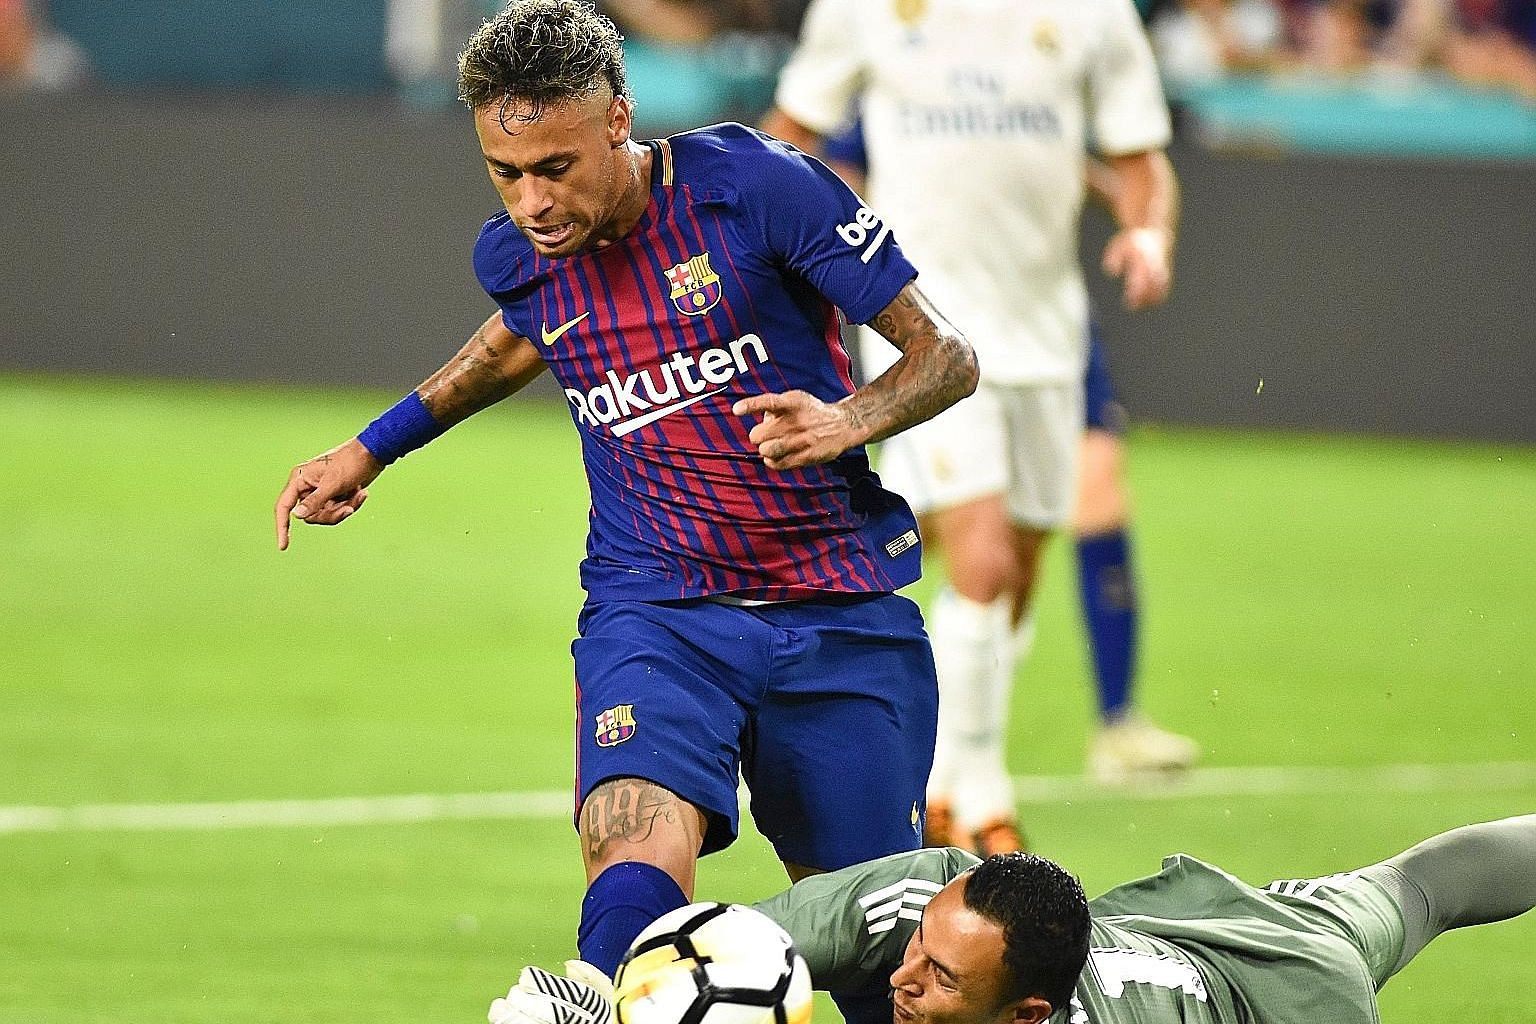 Barcelona's Neymar in action against Real Madrid goalkeeper Keylor Navas during a pre-season International Champions Cup match at the Hard Rock Stadium in Miami, Florida. The forward had agreed to a renewal bonus with Barcelona last year when he exte